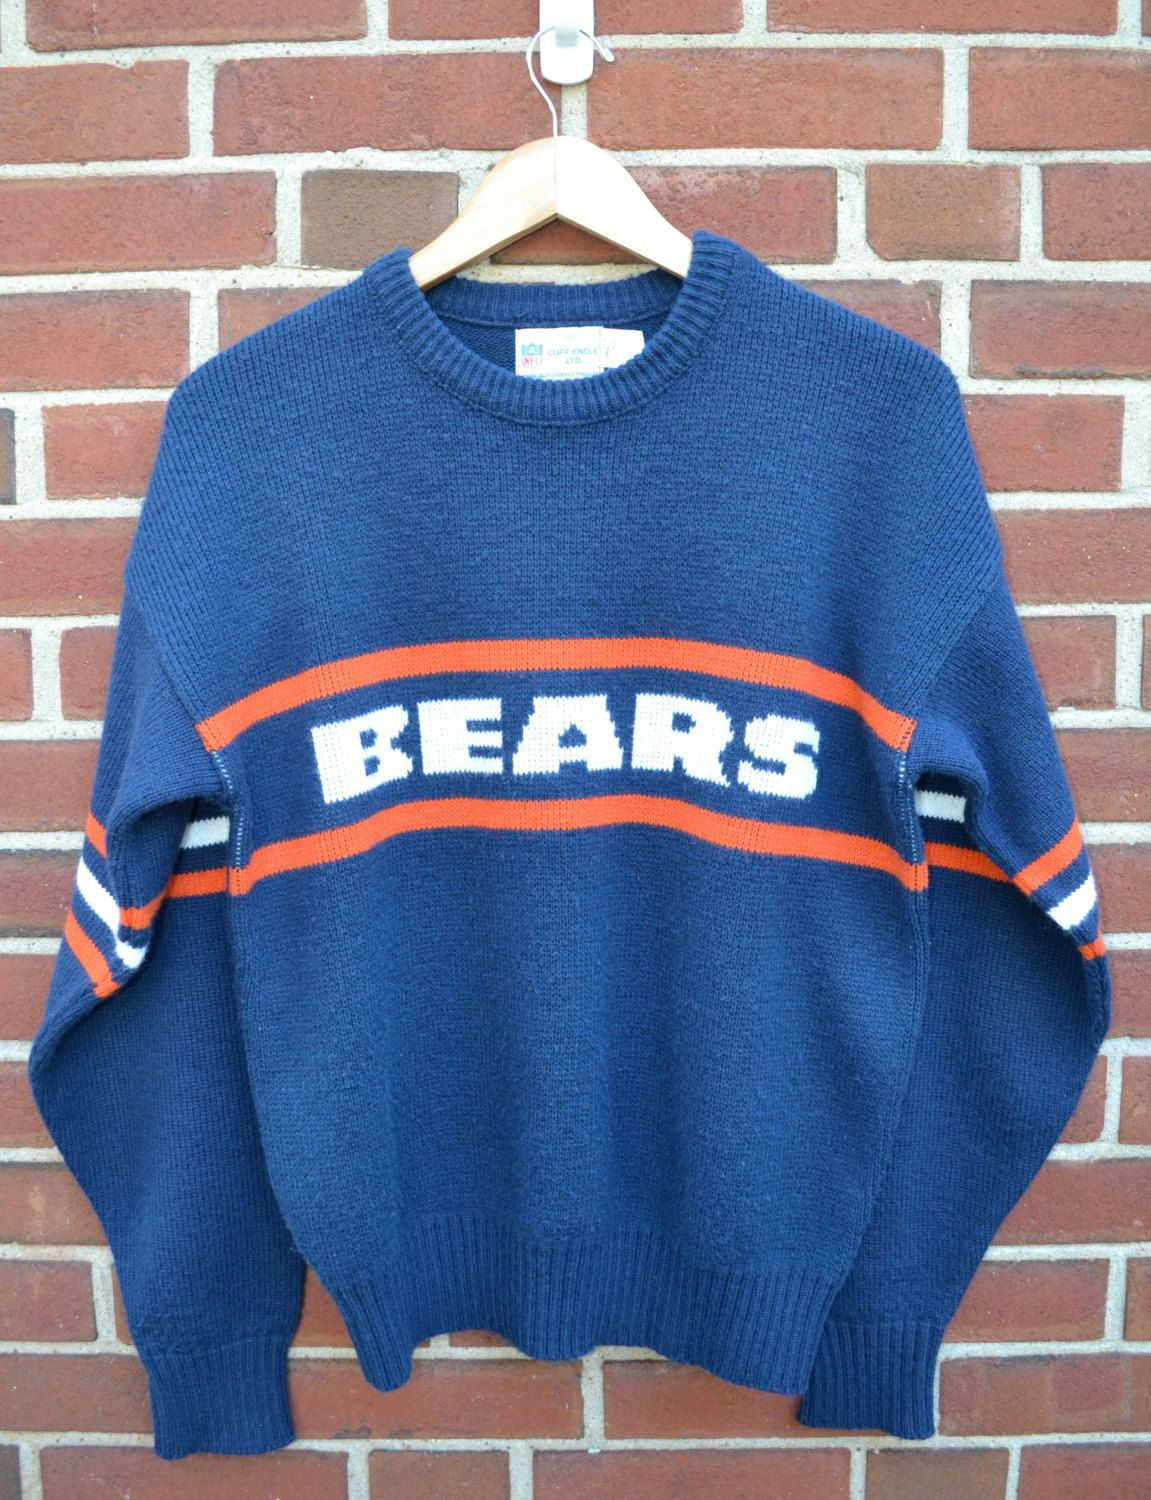 Cliff Engle NFL Proline Chicago Bears Sweater in Blue - 1980s